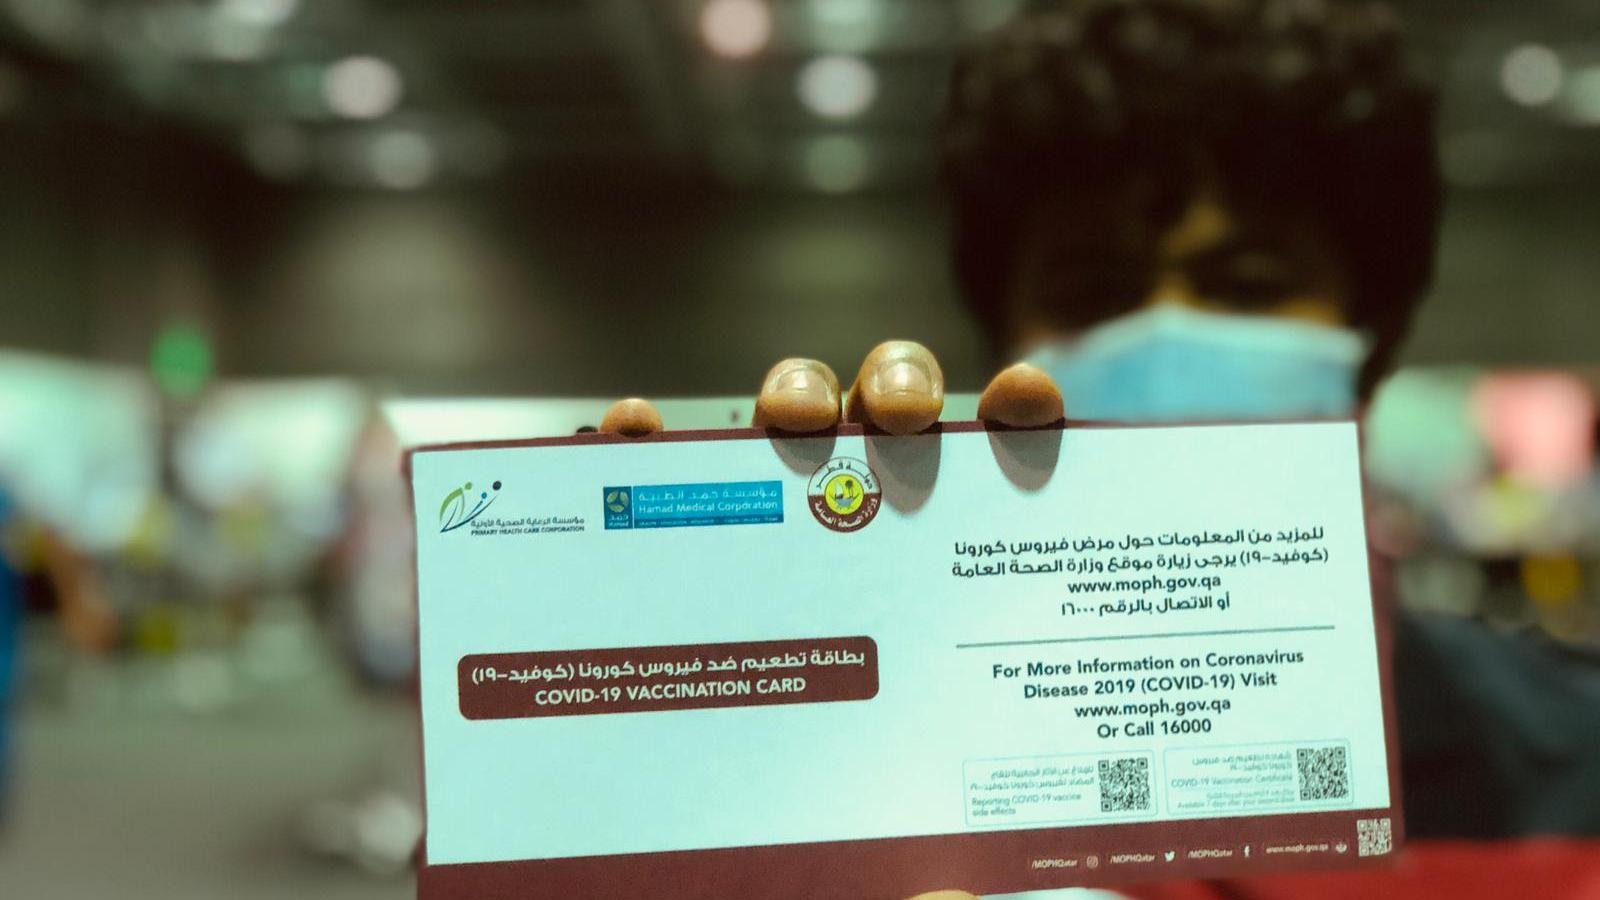 35.5 percent adults in Qatar received at least one dose of COVID-19 vaccine: MoPH